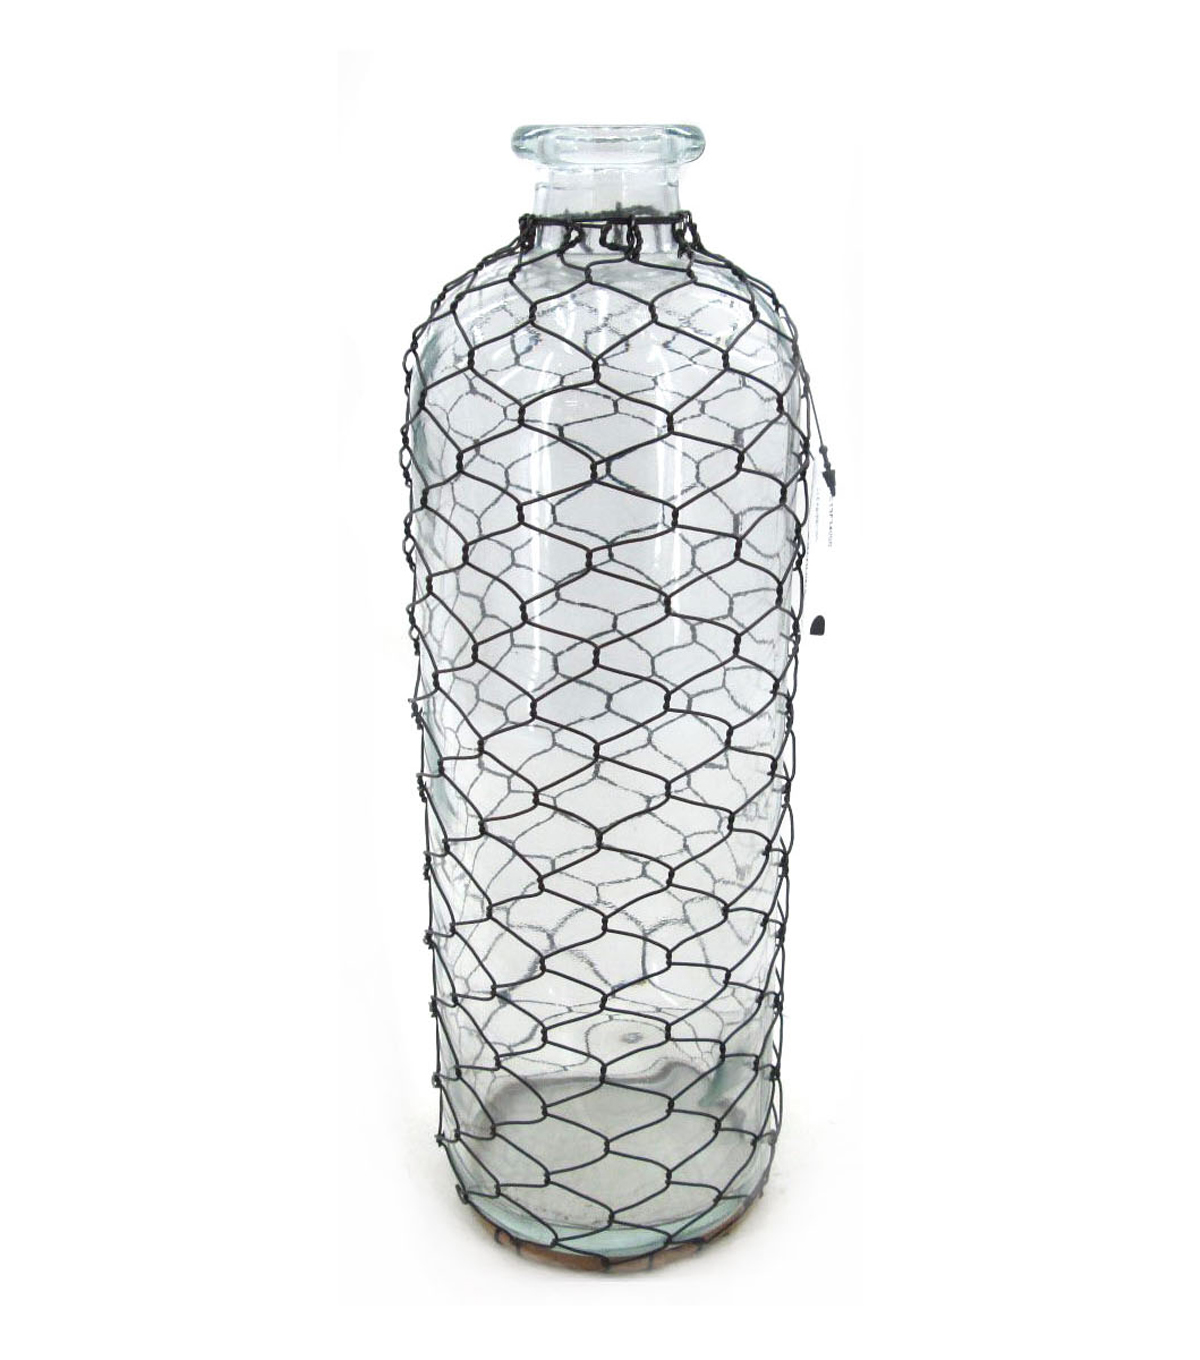 Bloom Room Glass Vase With Chicken Wire